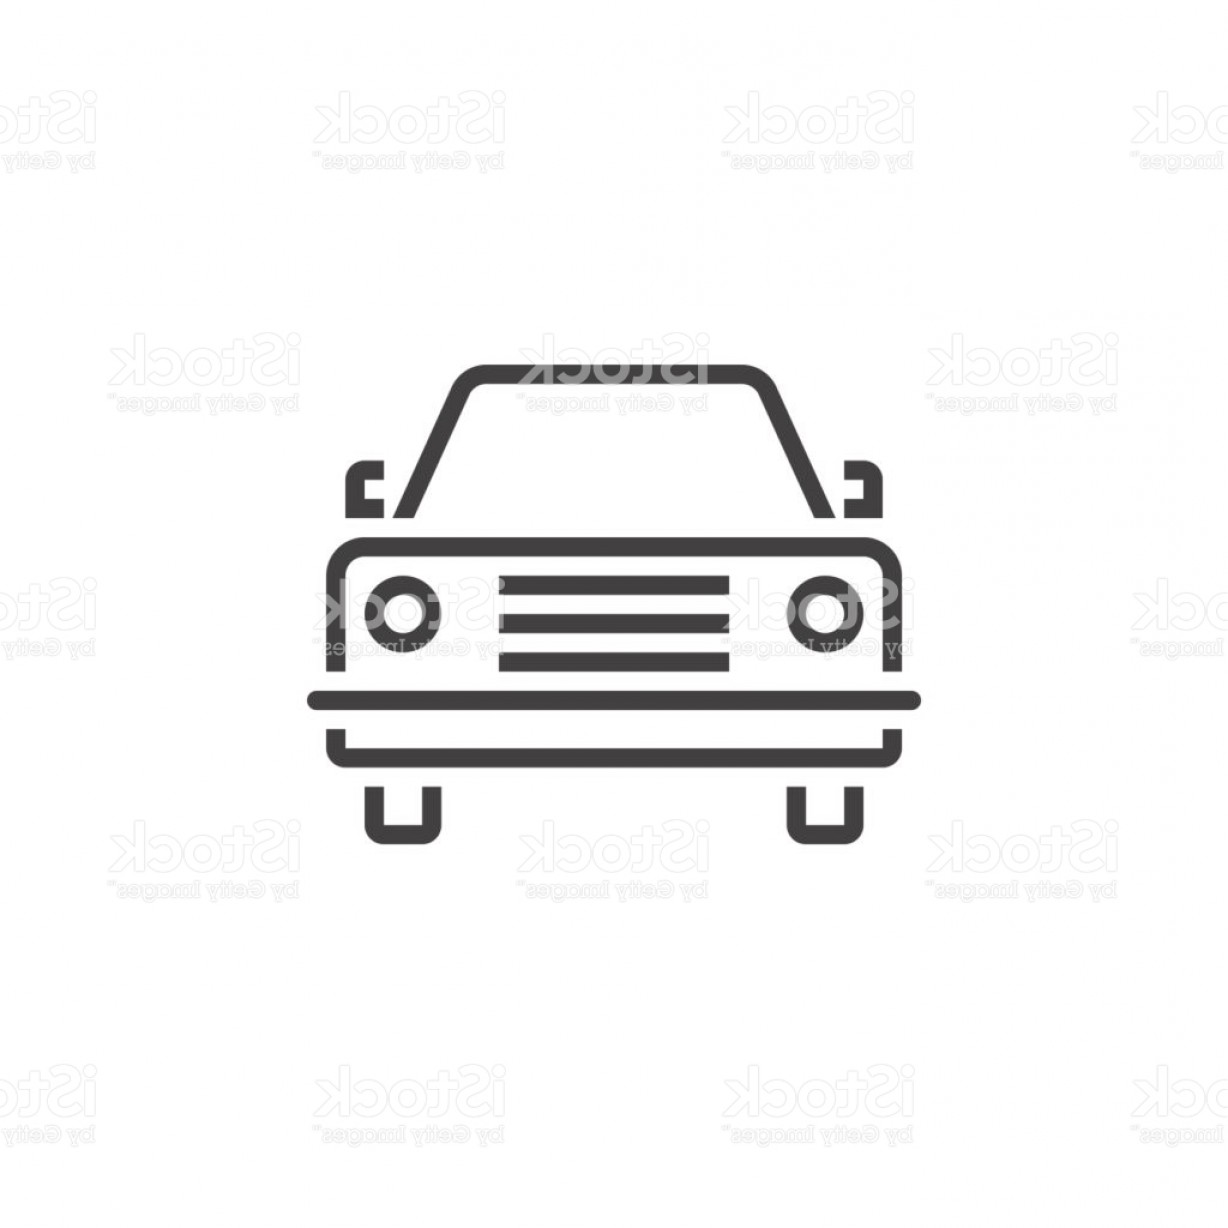 Auto Mobile Vector Art: Car Line Icon Outline Automobile Vector Logo Linear Pictogram Isolated On White Gm